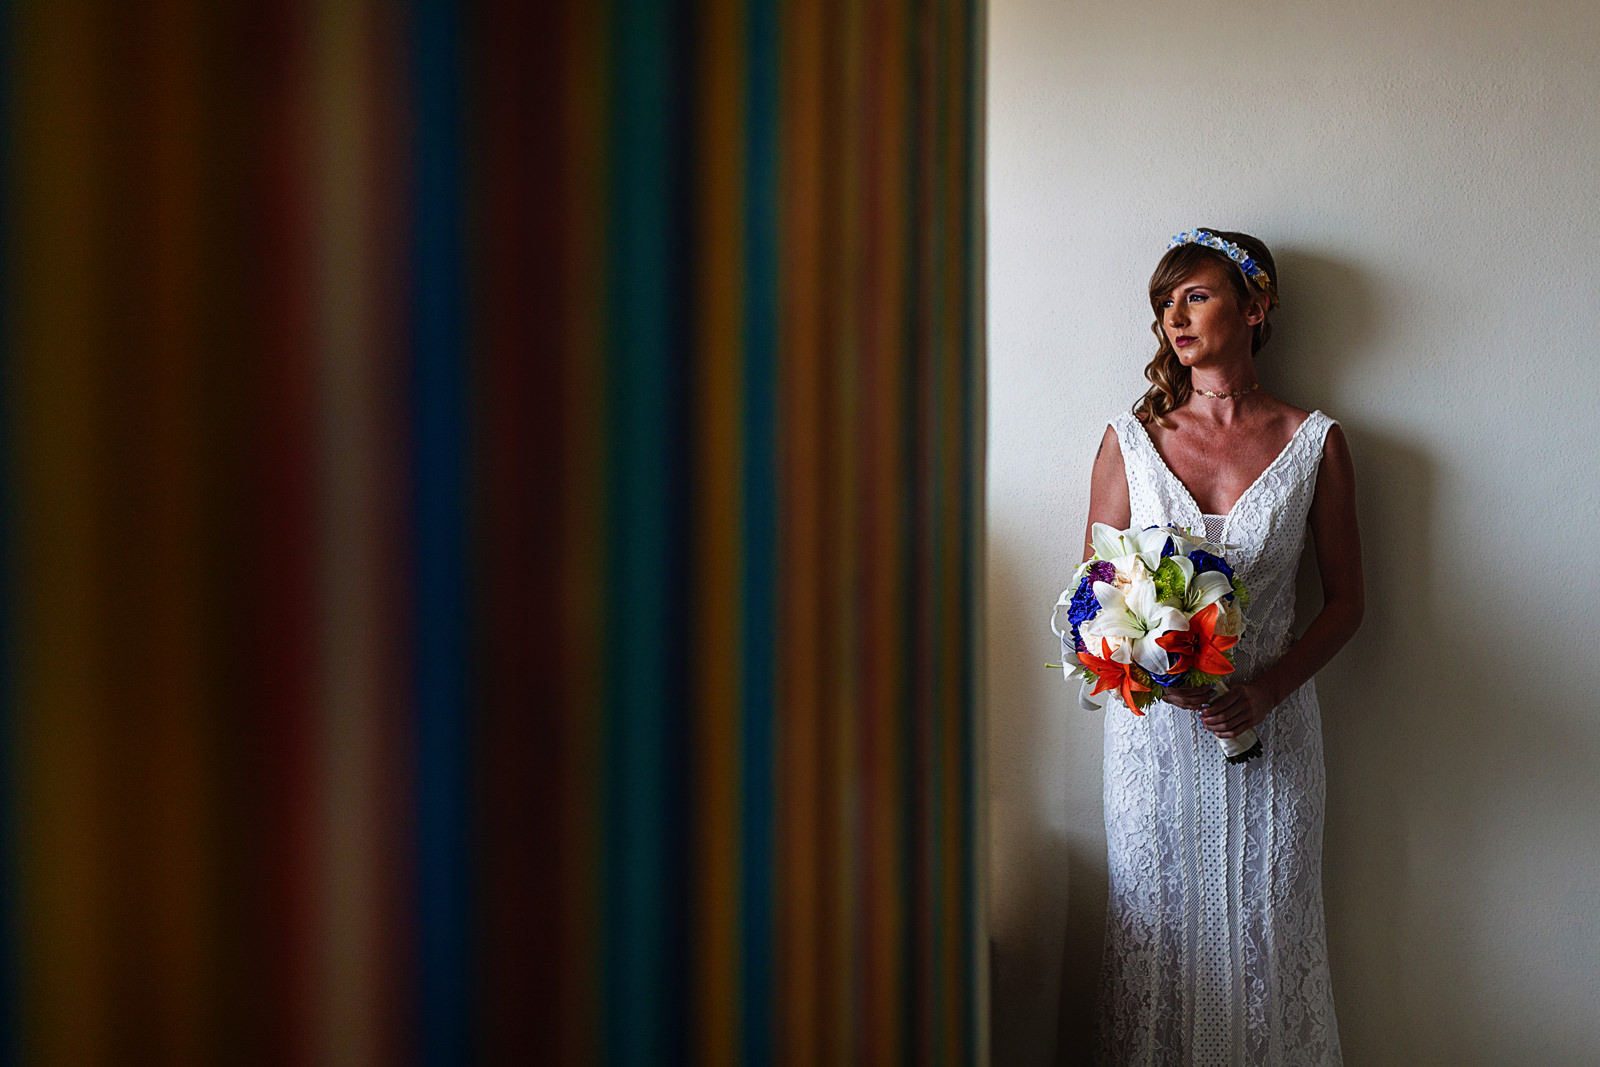 Colorful portrait of the bride light up by the window